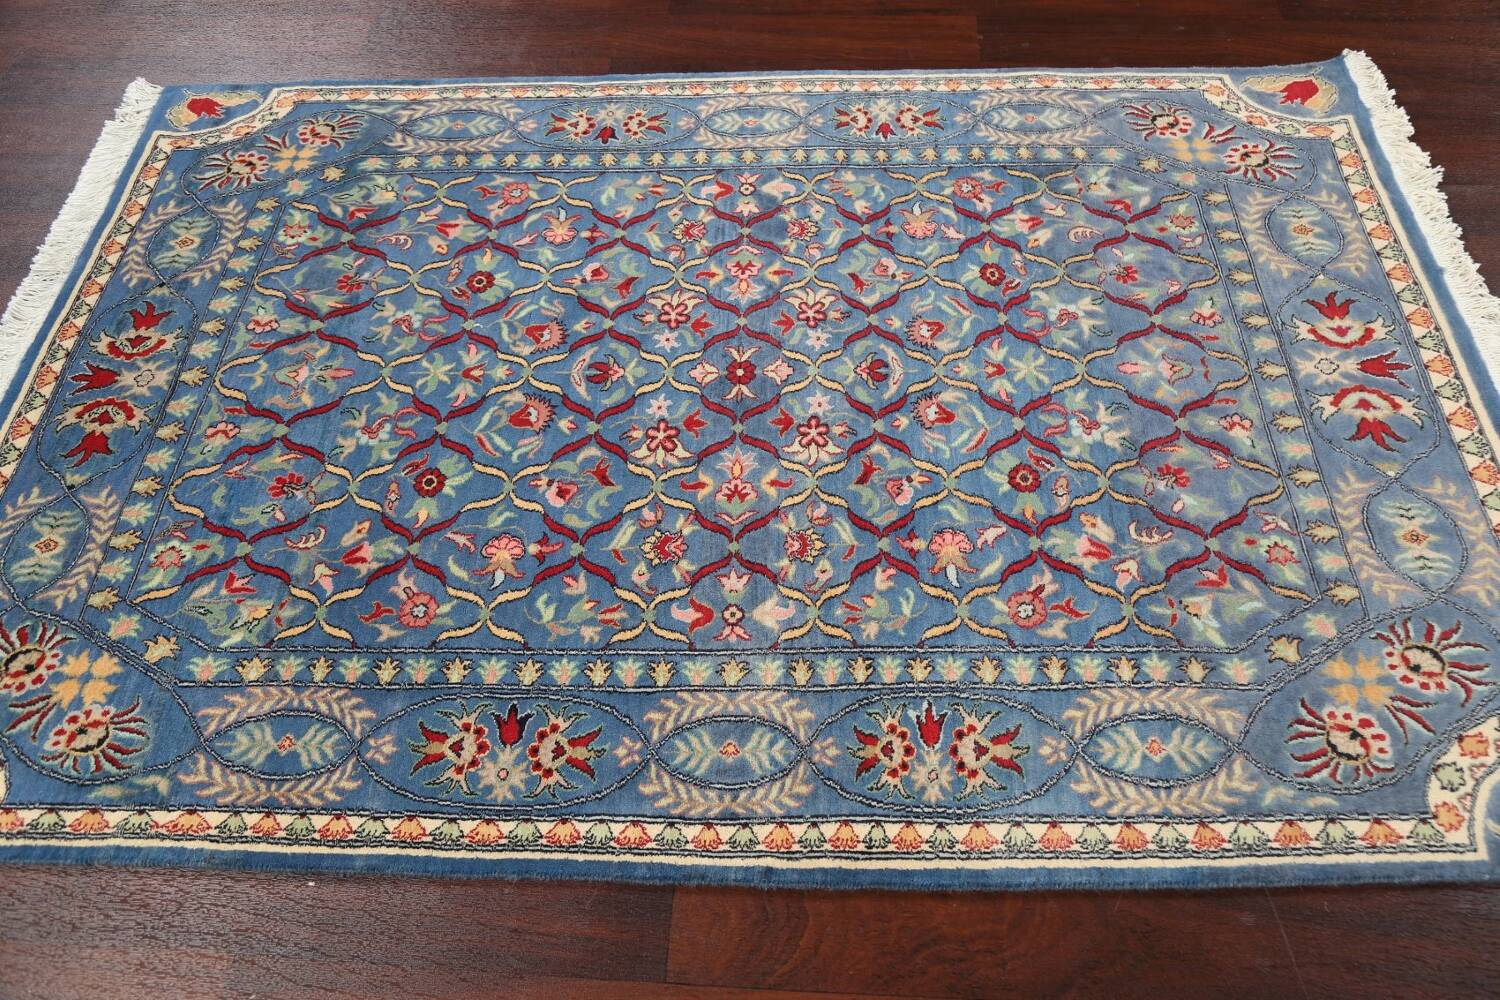 Vegetable Dye Floral Tabriz Oriental Area Rug 4x6 image 12